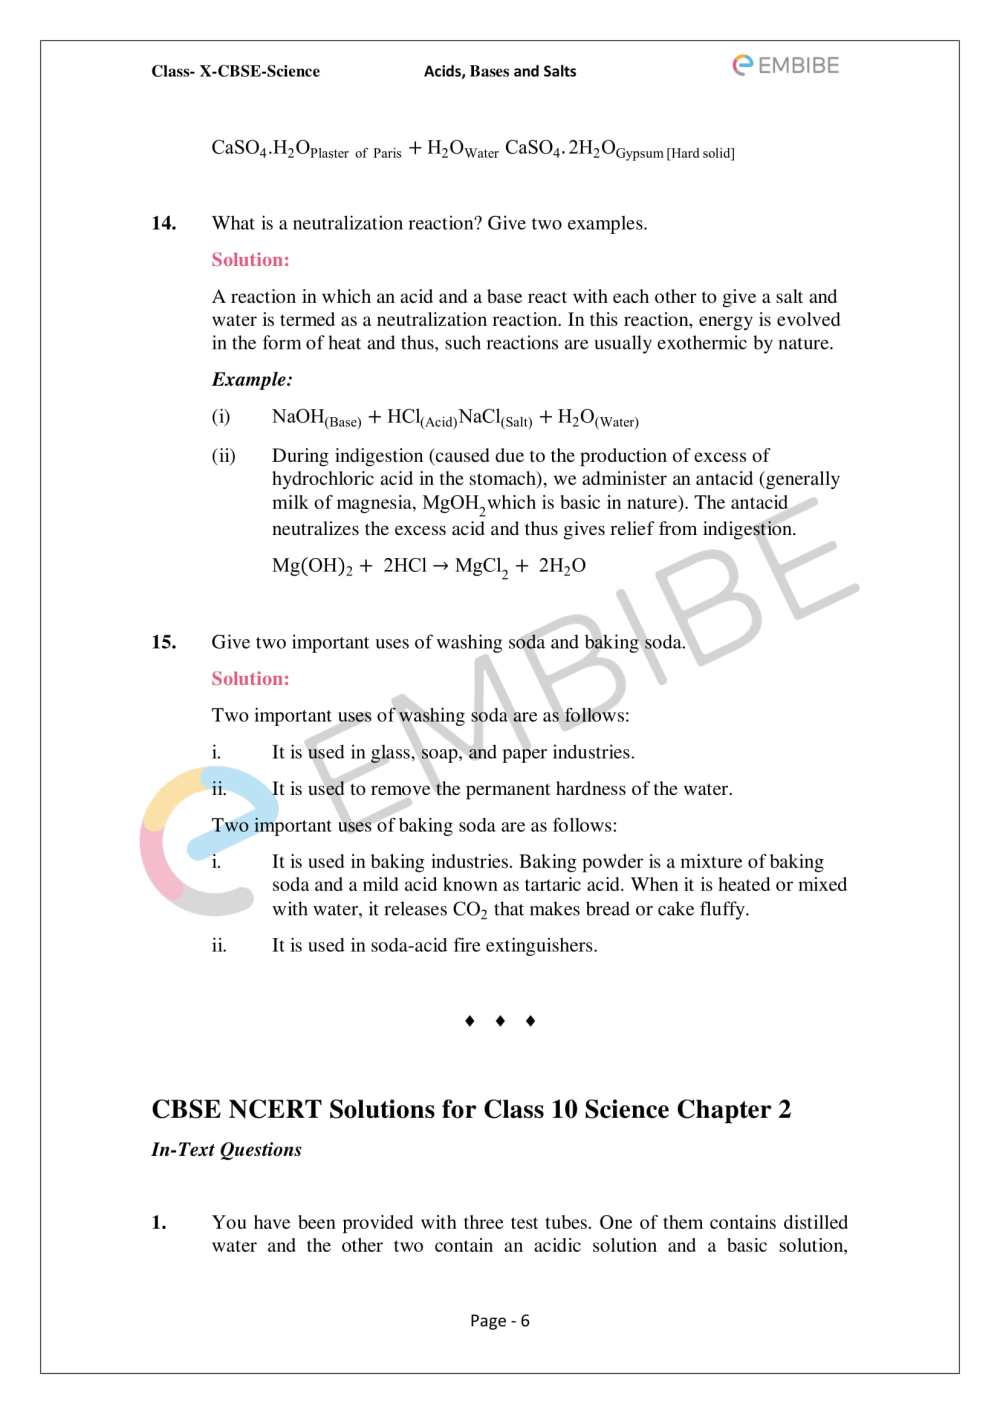 medium resolution of Acids Bases Salts Notes Worksheet   Printable Worksheets and Activities for  Teachers